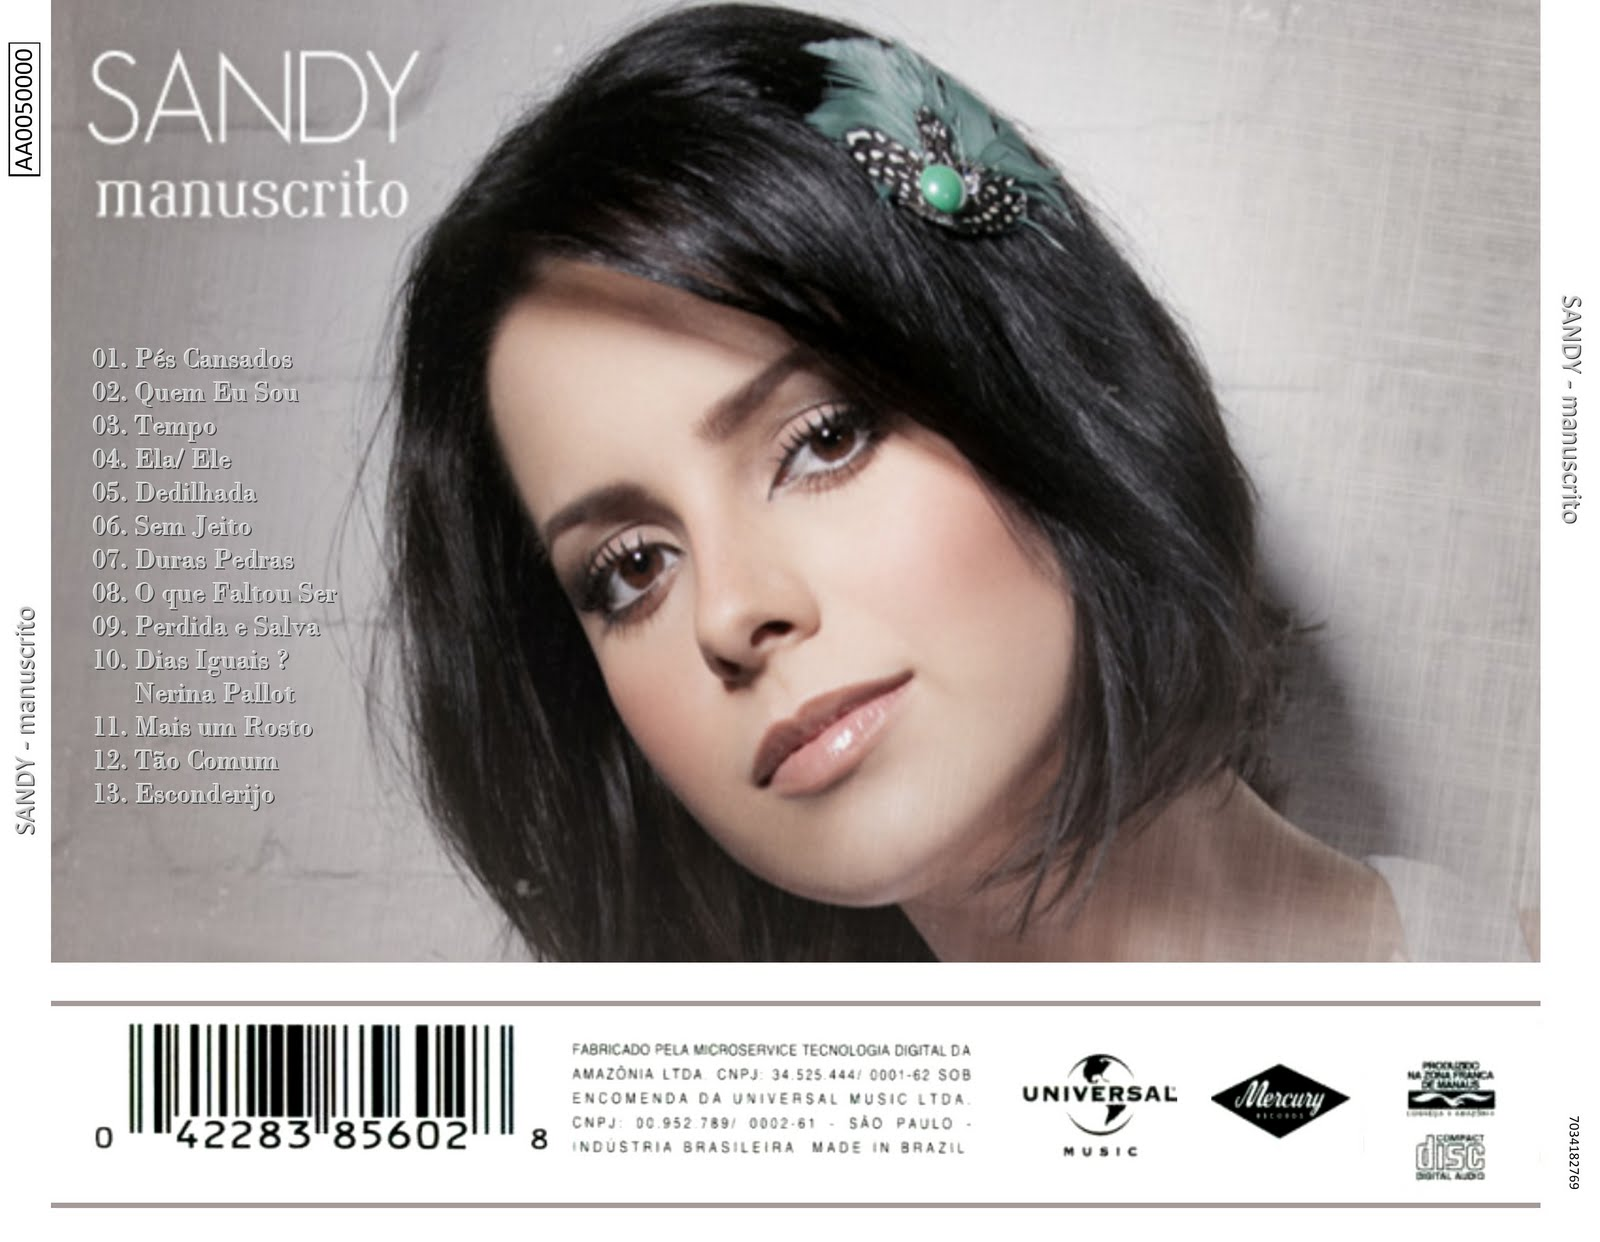 cd da sandy manuscrito para